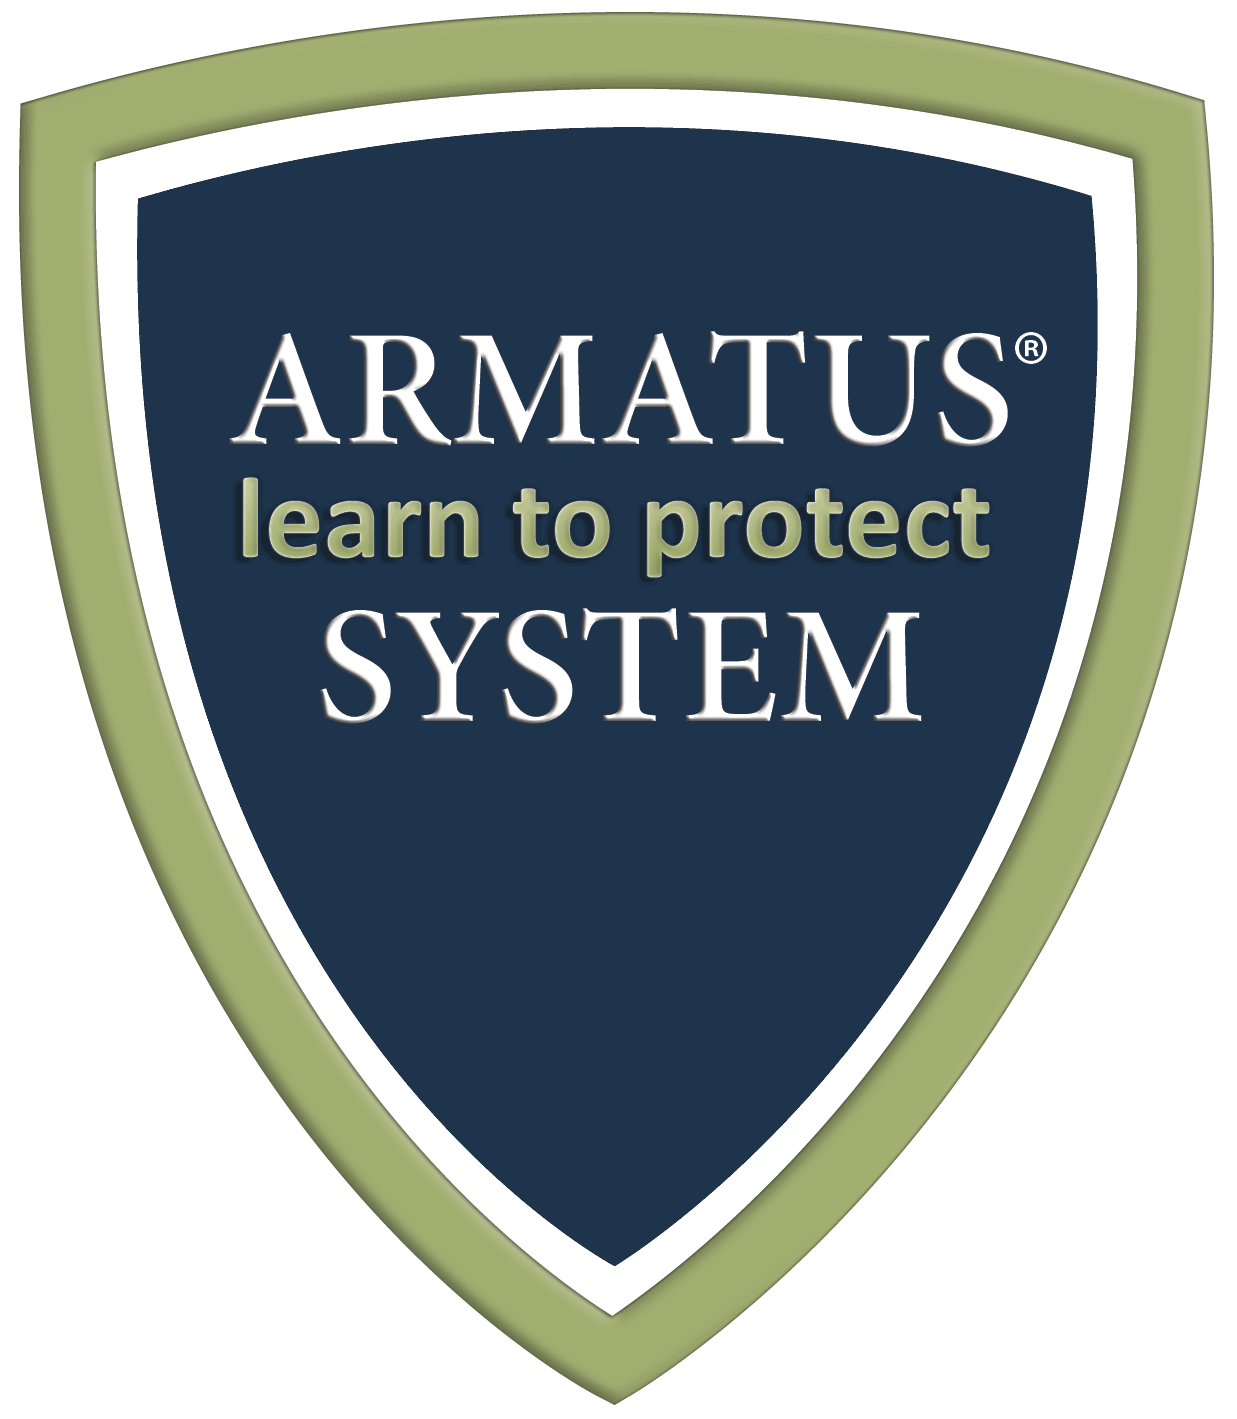 Armatus Learn to Protect System logo